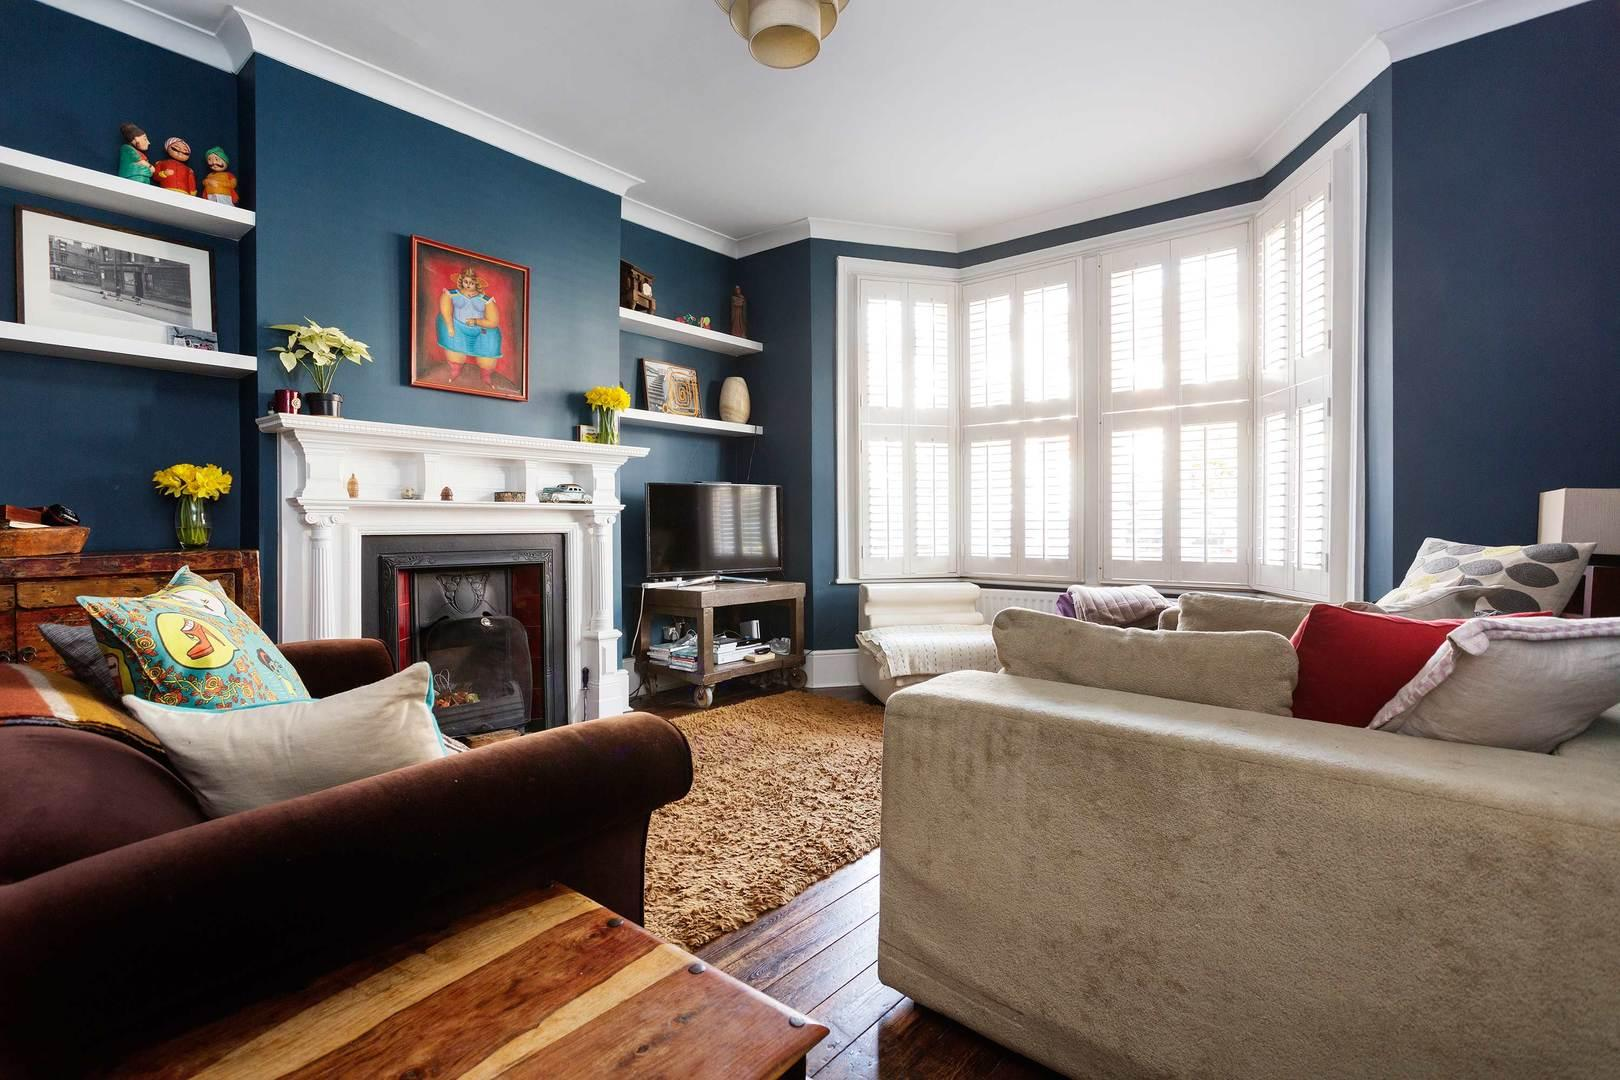 Property Image 2 - Colourful Inviting West London Home Ideal for Families